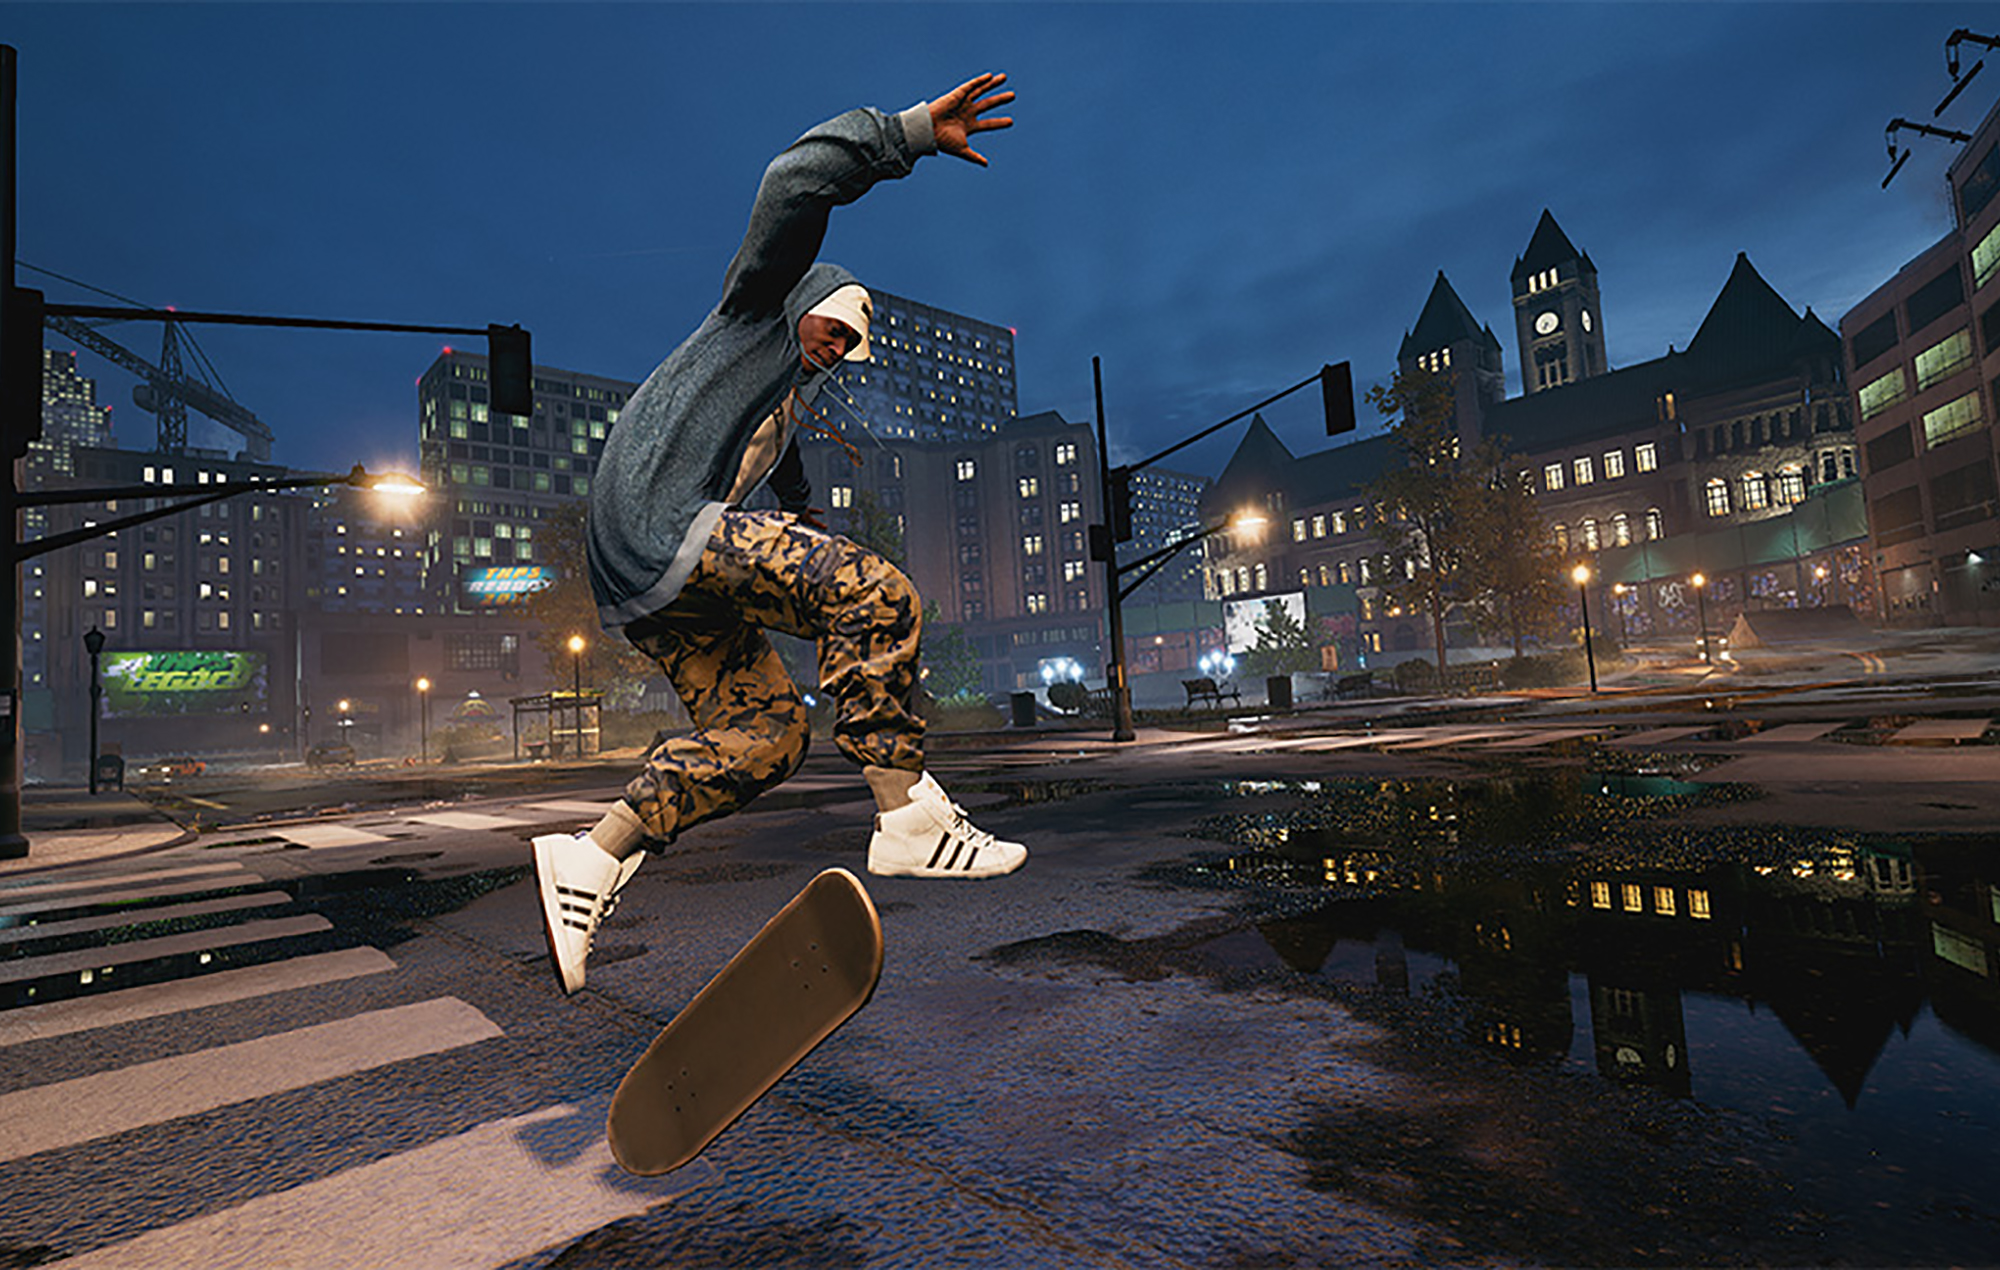 Tony Hawk S Pro Skater 1 2 All You Need To Know About The Remaster Release Date Soundtrack News And More Nme